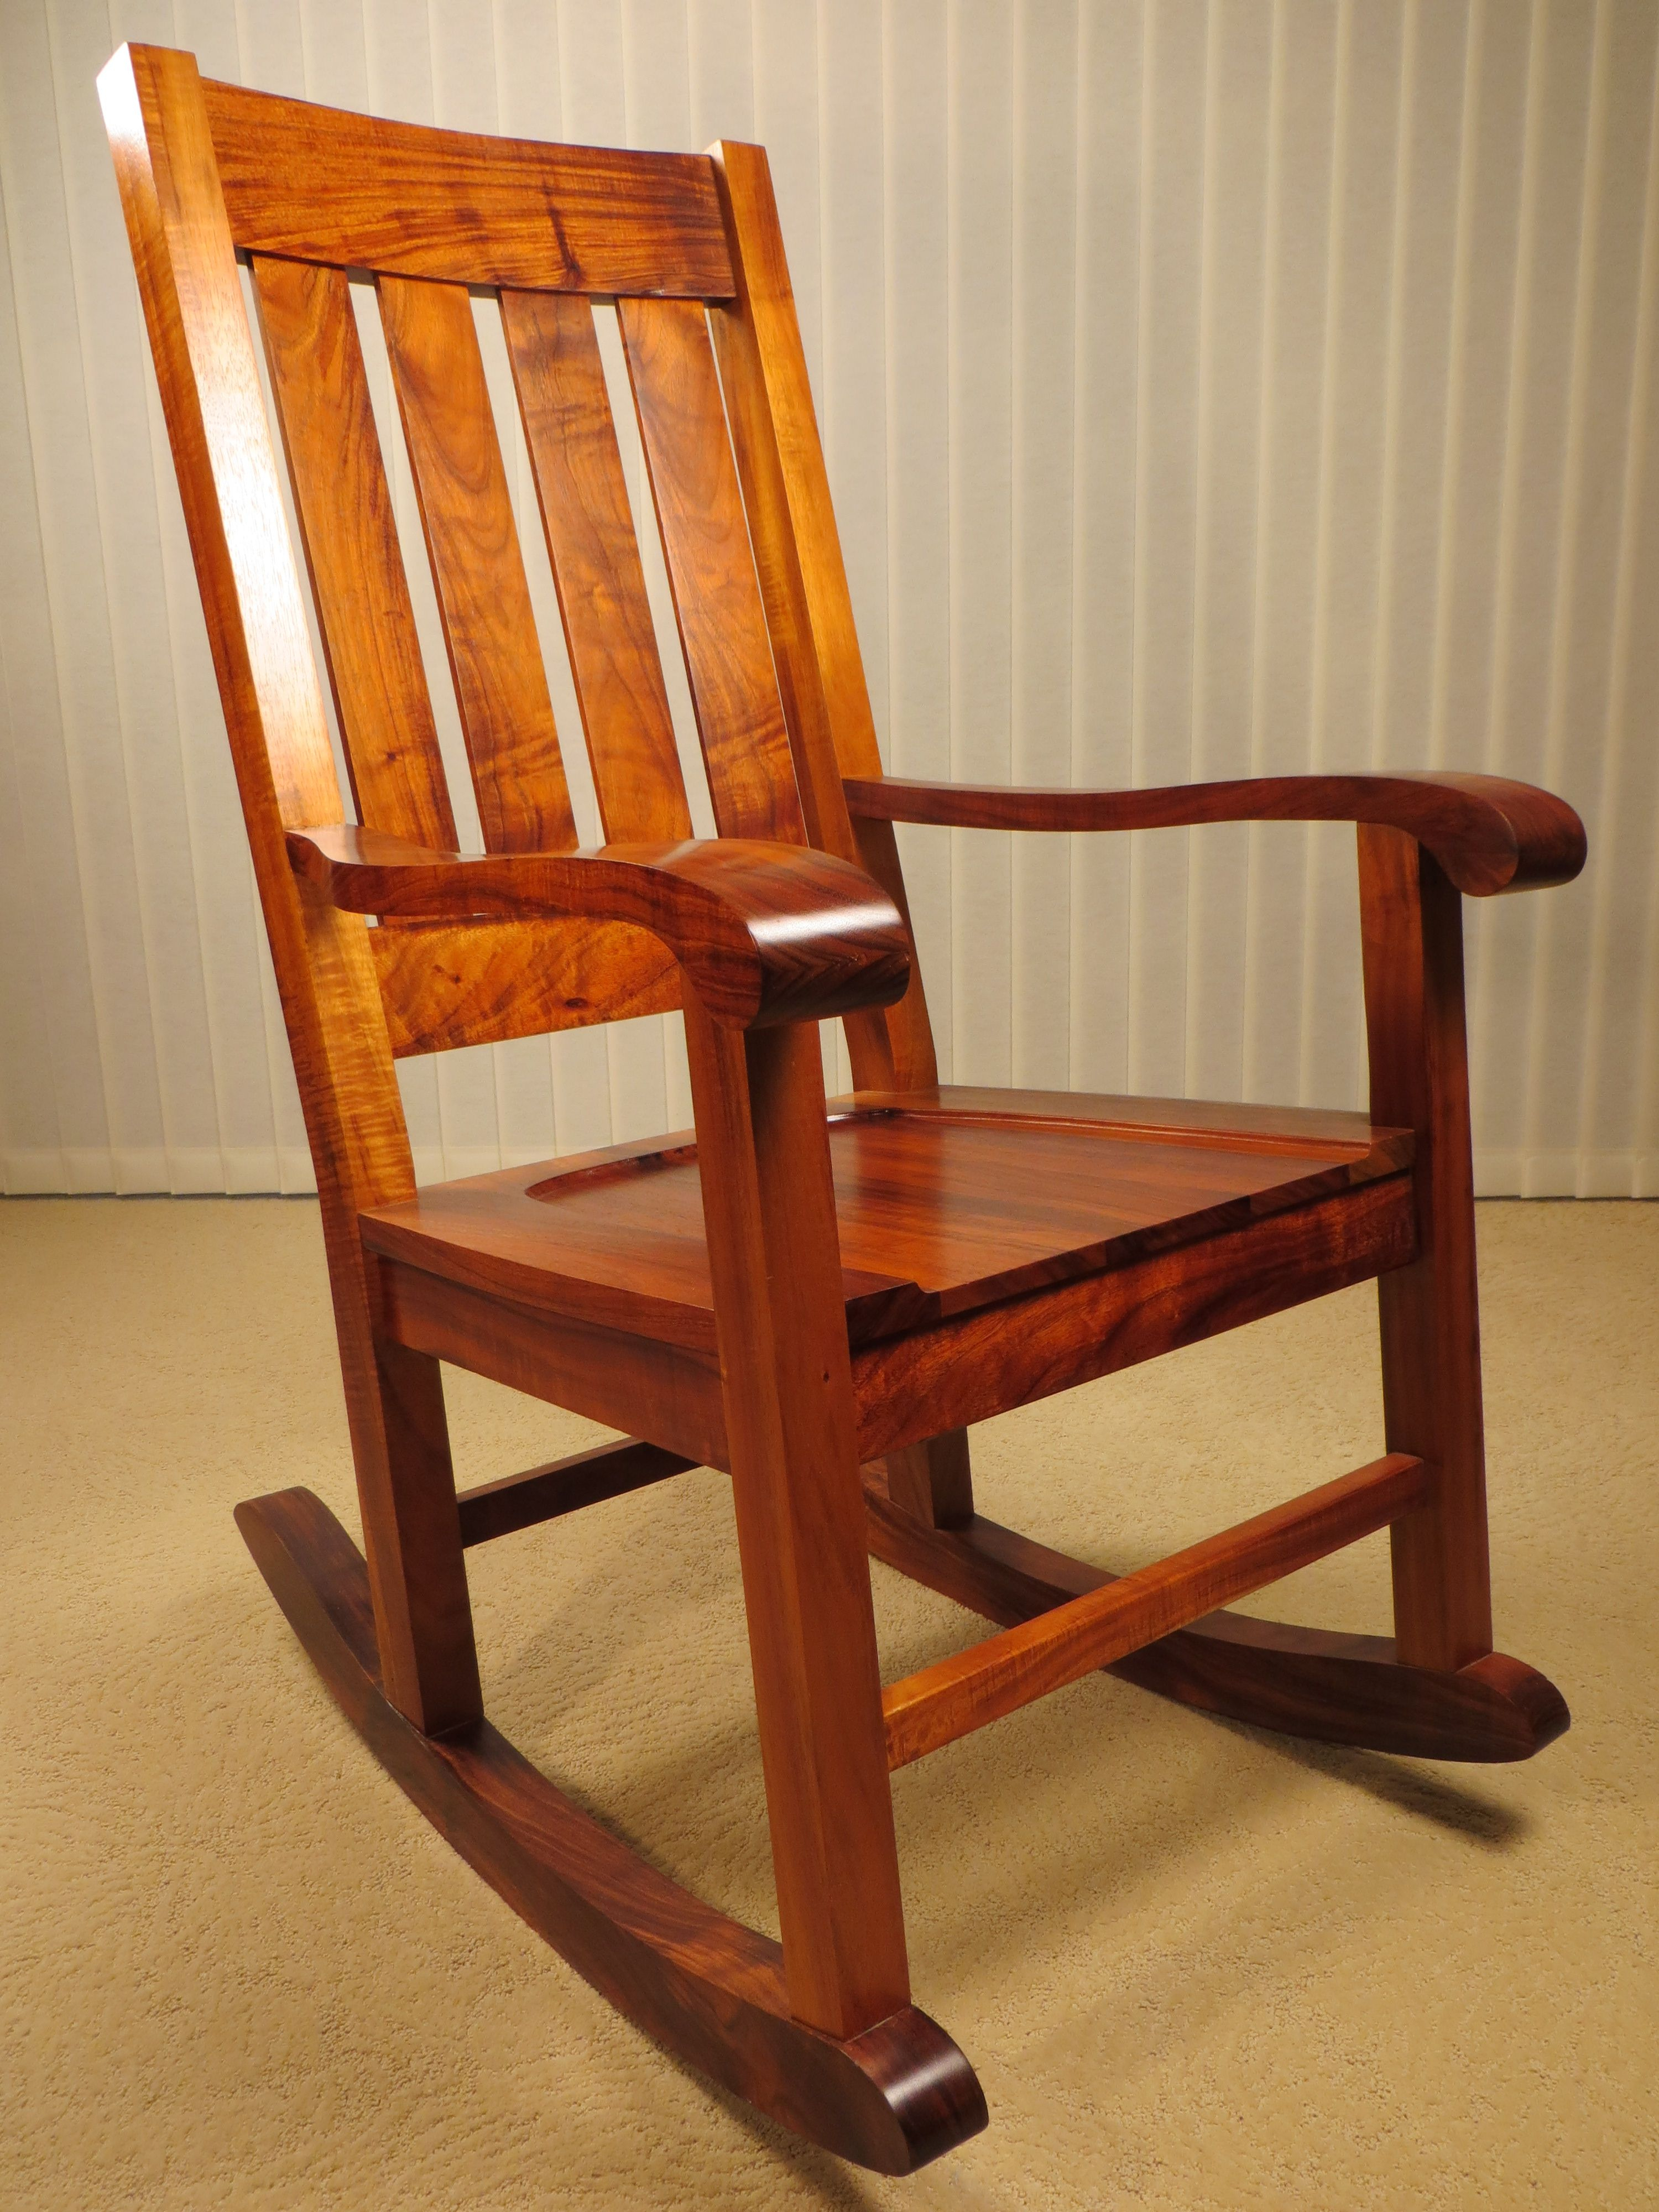 Handcrafted Koa Rocking Chair Made In Hilo, Hawaii (#4 of 20)